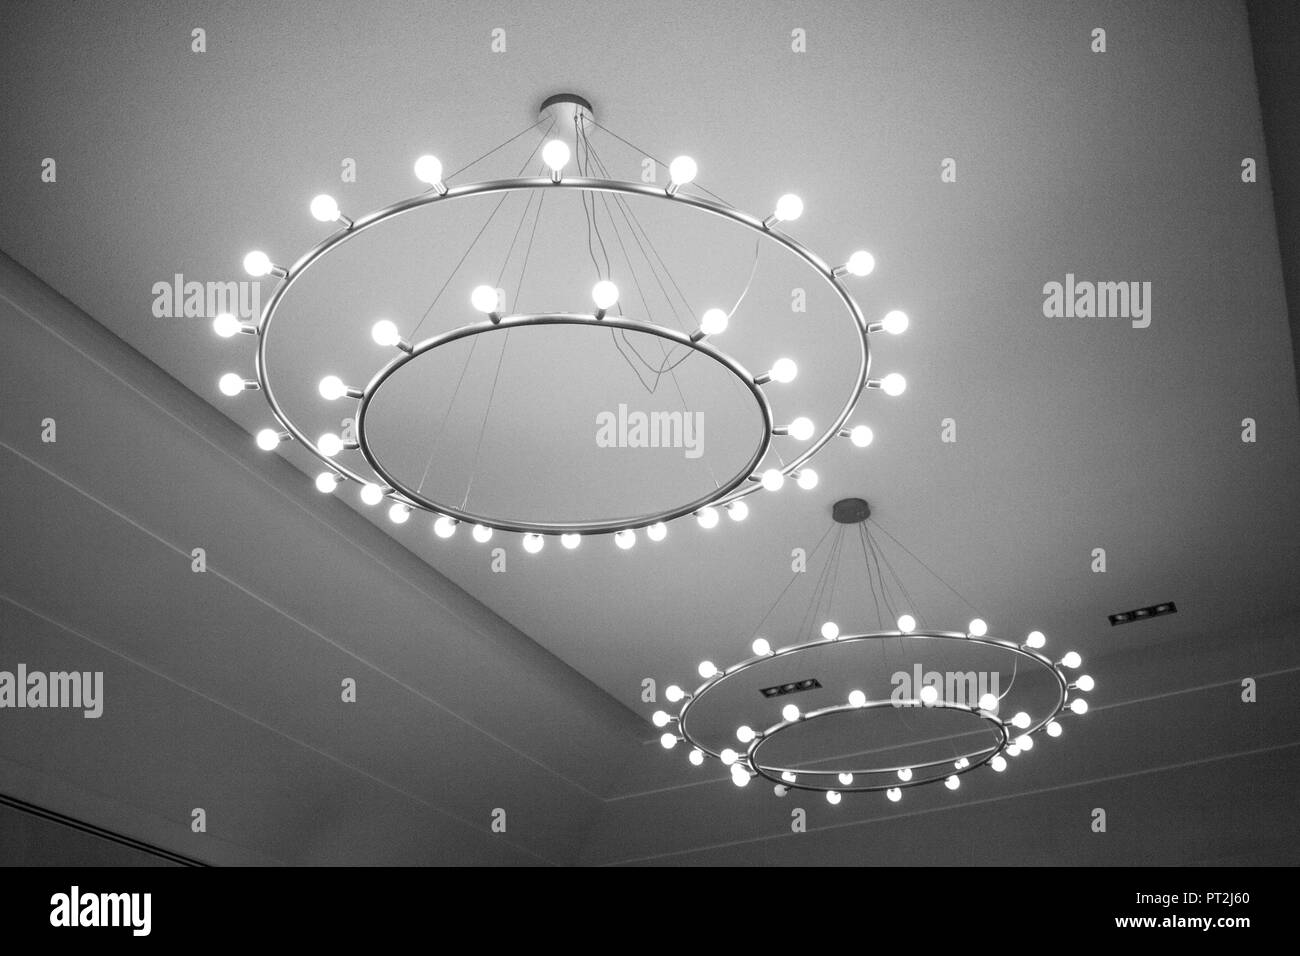 Imposing ceiling lighting - Stock Image